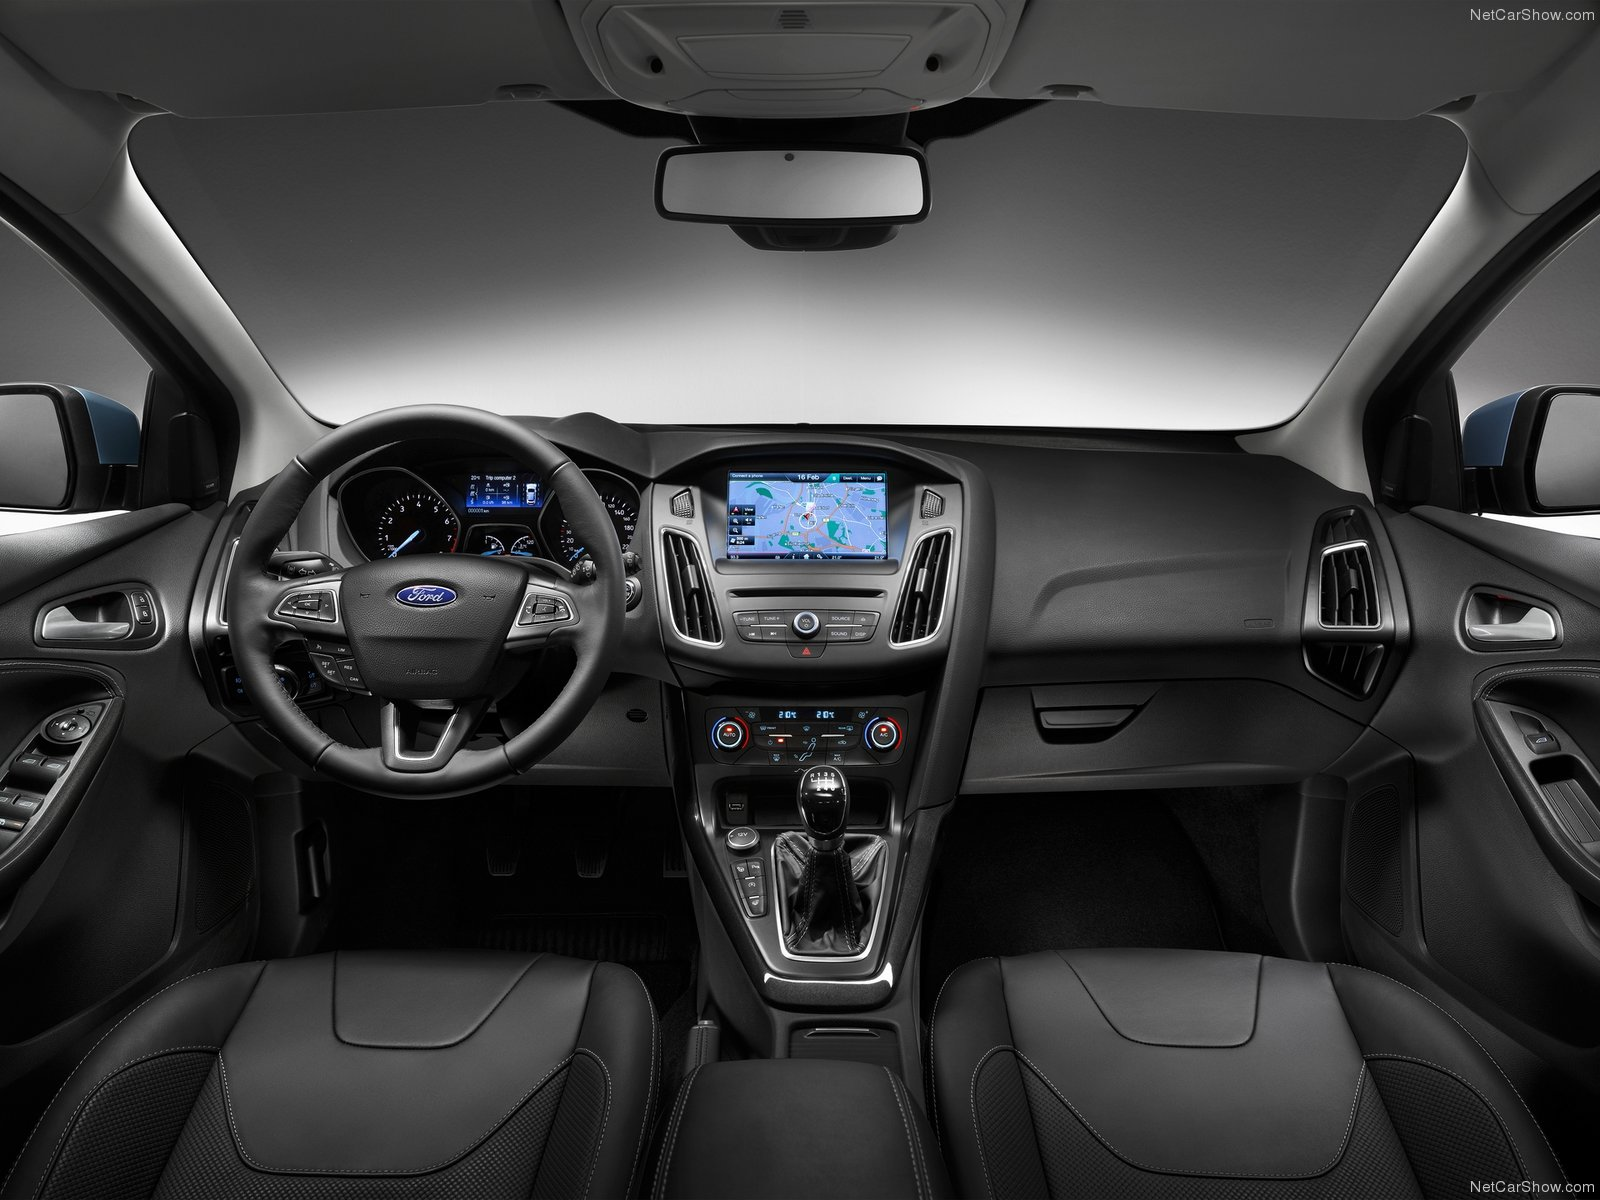 Ford Focus 2015 Interior-Best Selling Cars